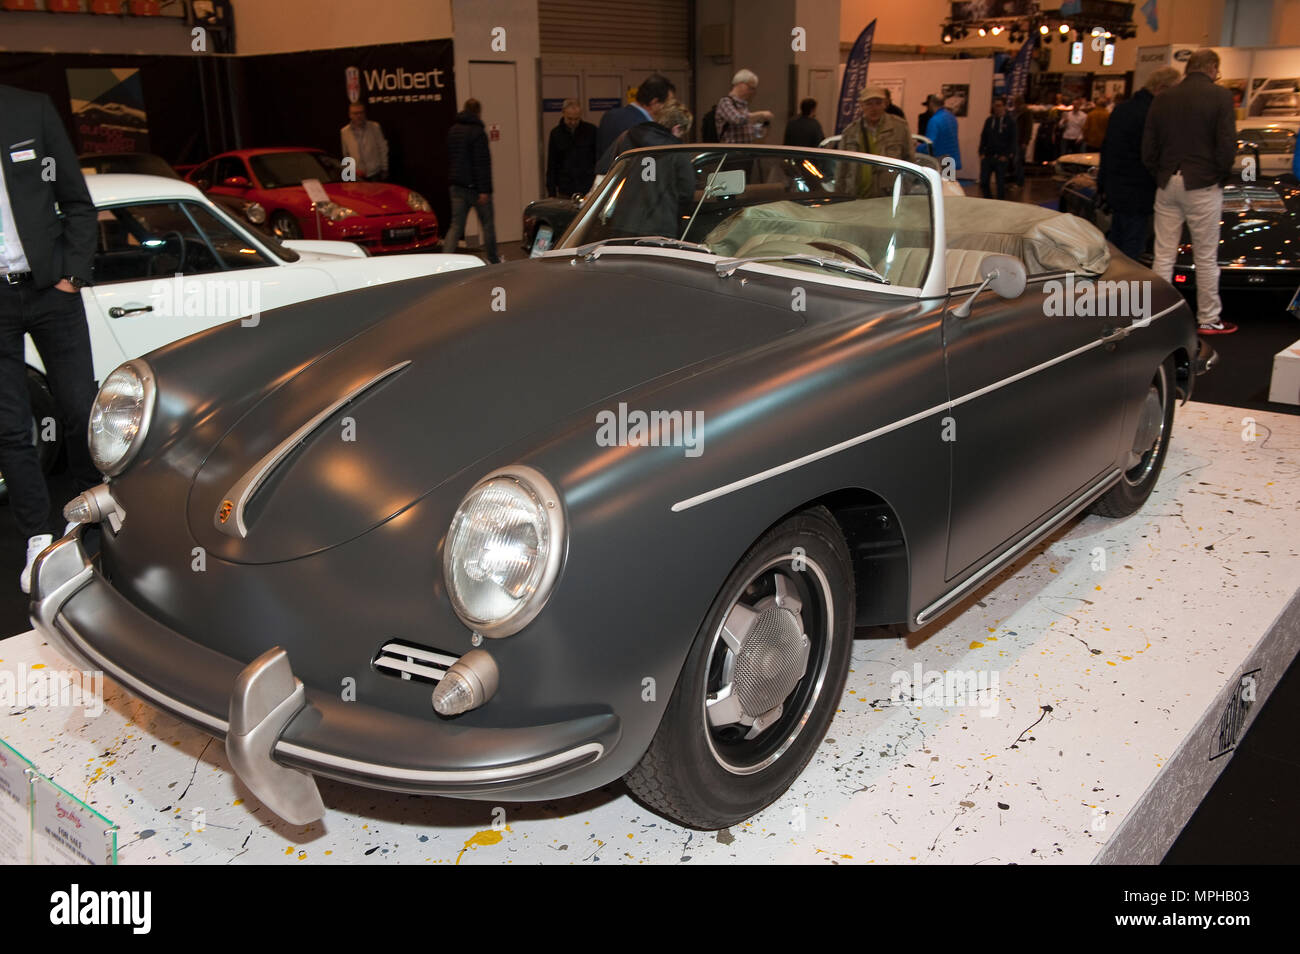 Porsche 356 Roadster Hedonic, modified engine,  | Porsche 356 Roadster Hedonic - Stock Image